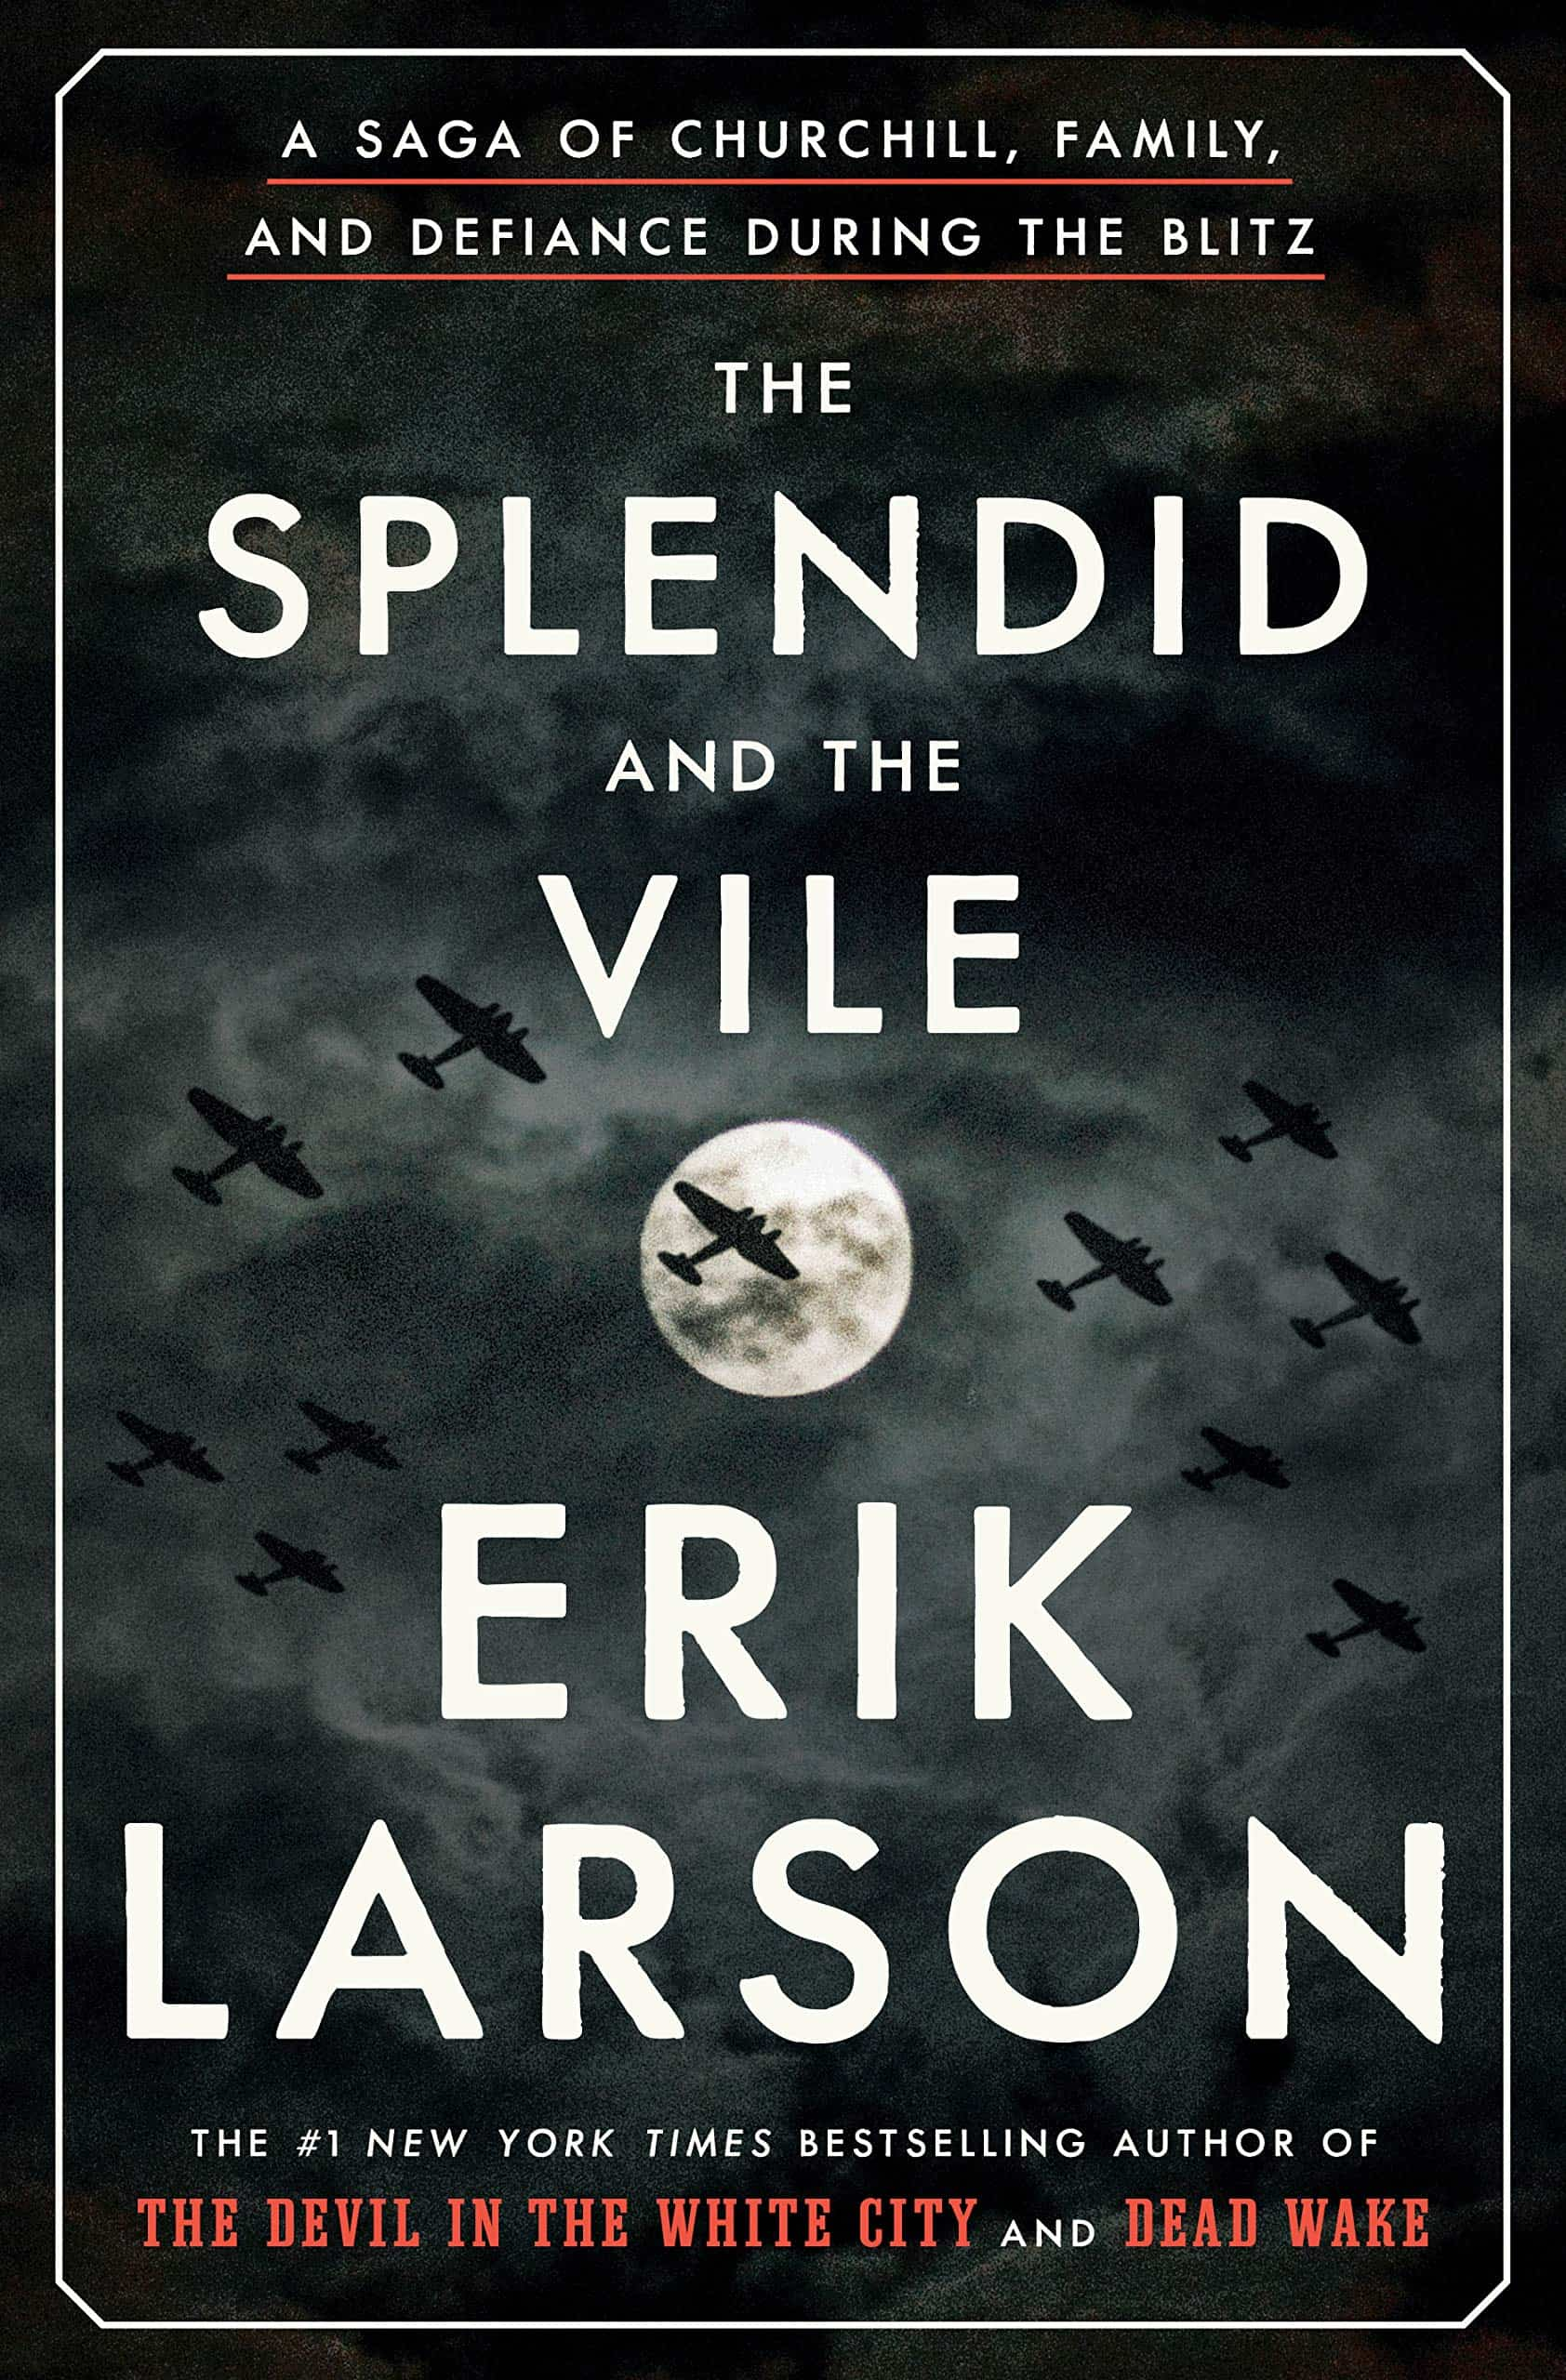 The cover of The Splendid and the Vile